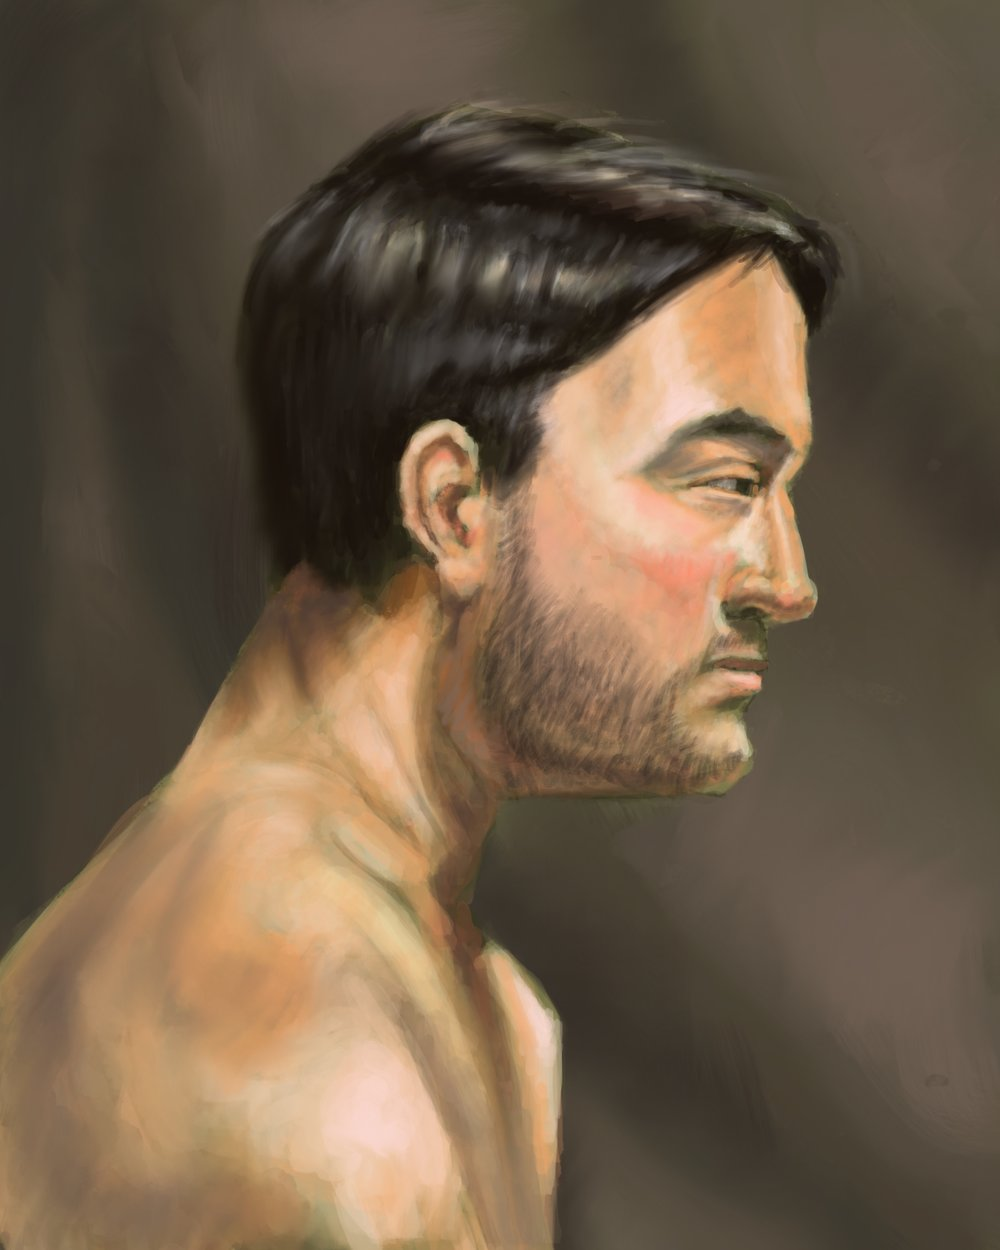 Profile of our model, Matt Digital painting, ProCreate for iPad